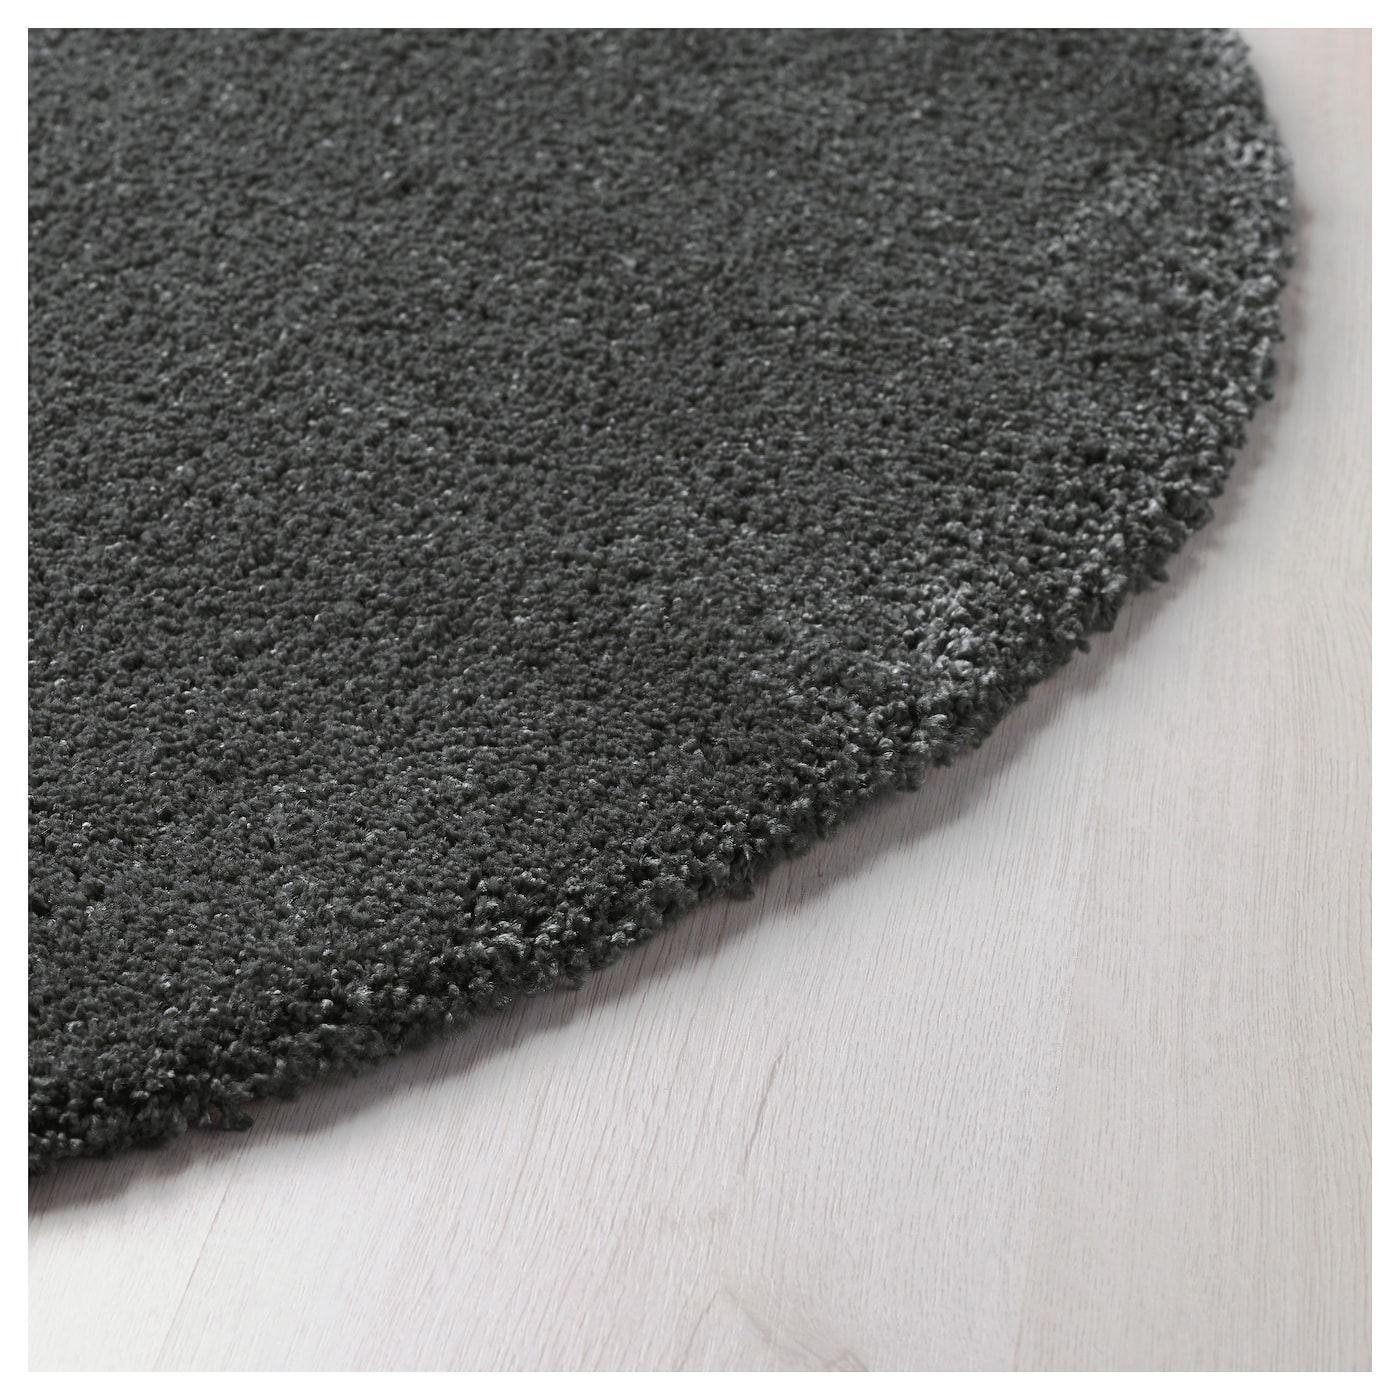 Attractive IKEA ÅDUM Rug, High Pile The Dense, Thick Pile Dampens Sound And Provides A